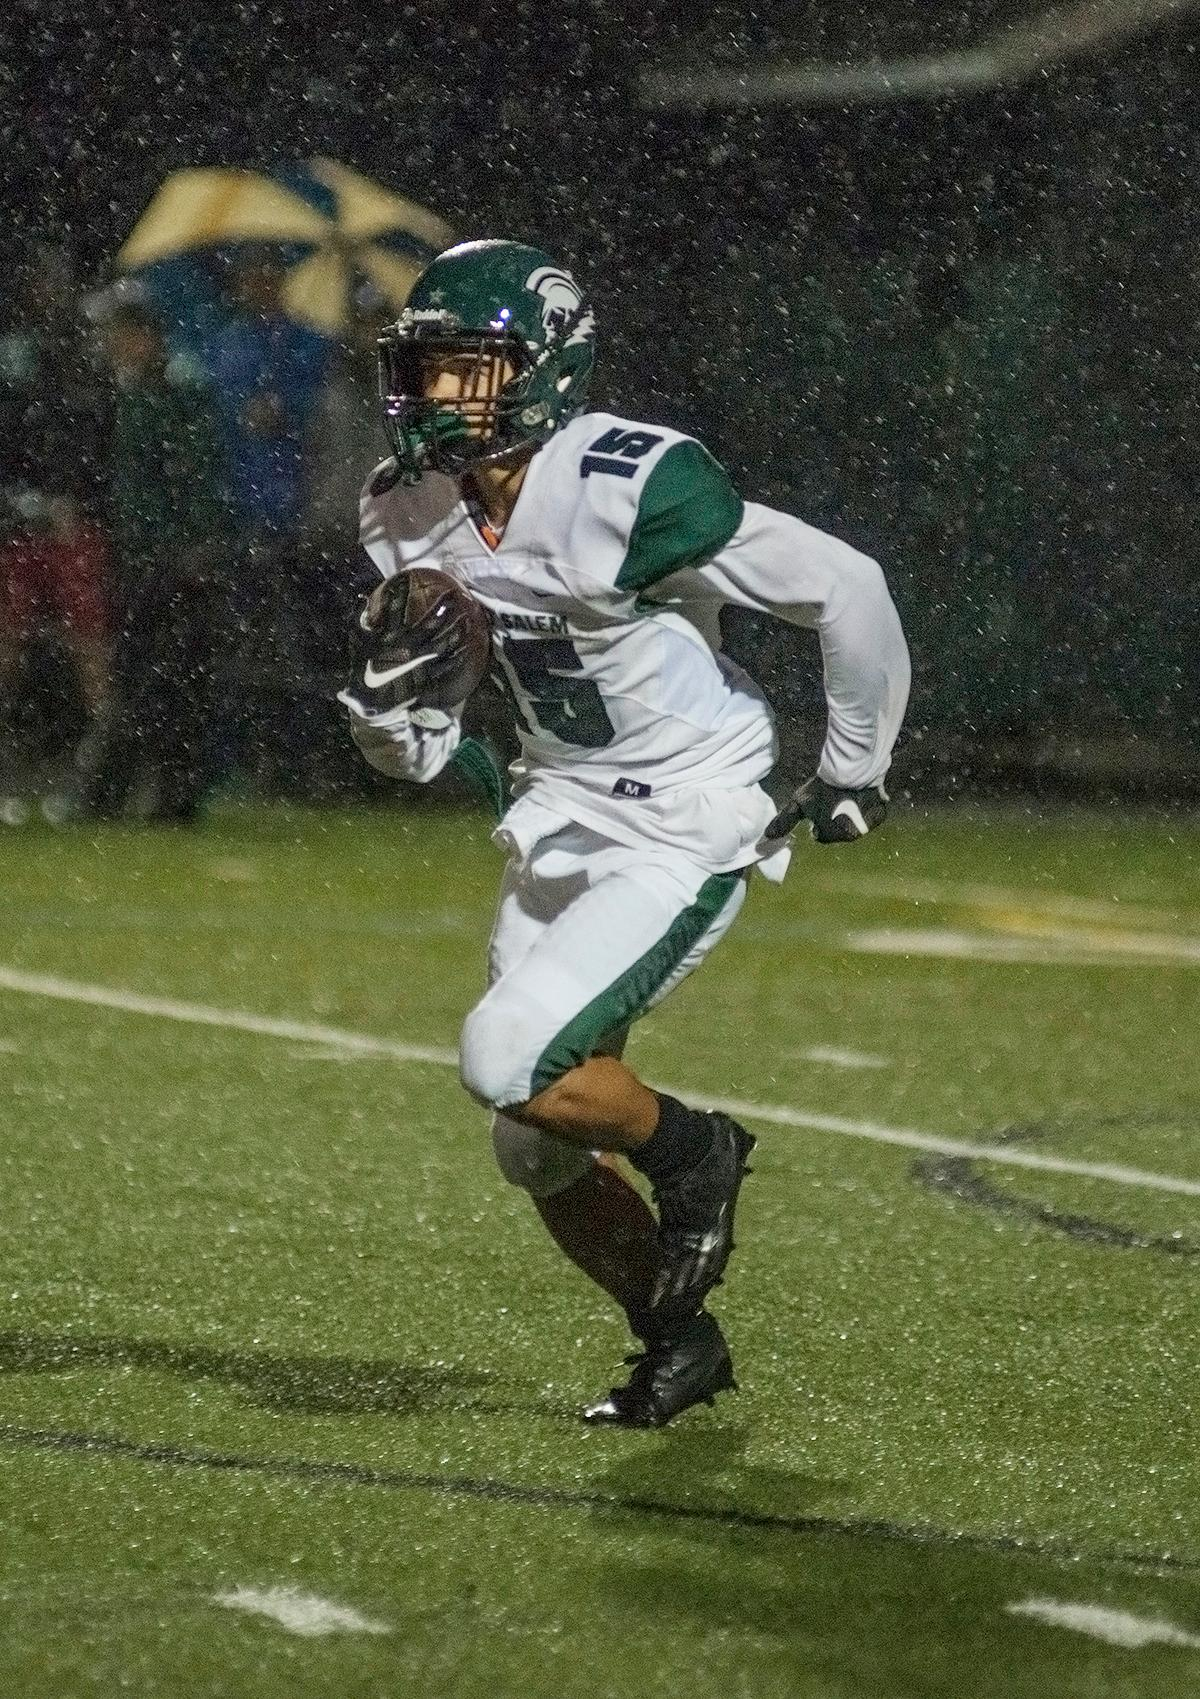 West Salem Titans wide receiver Anthony Gould carries the ball down field.  On a rainy Monday evening, Sheldon defeated West Salem 41 to 7 at their home field. The game had been postponed from Friday due to unhealthy levels of smoke in the atmosphere from nearby forest fires. Abigail Winn, Oregon News Lab